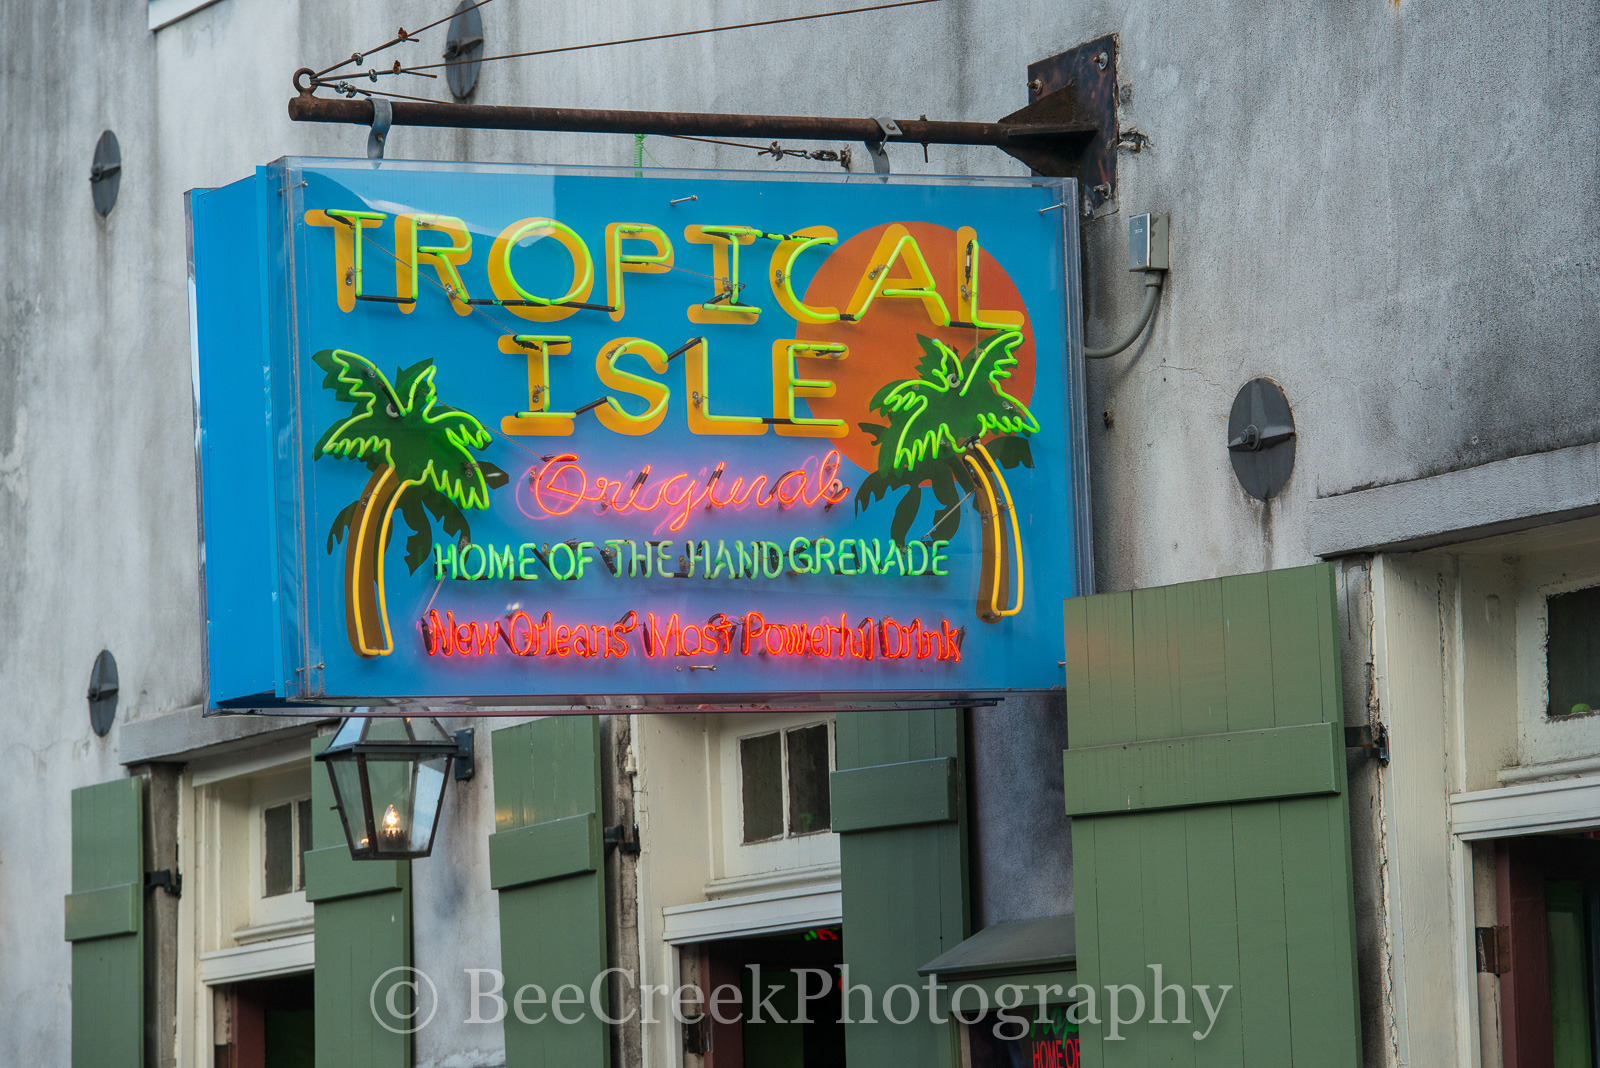 Bourbon Street, French Quarter, New Orleans, bars, drinks, hand grenade, live music, neon, neon signs, restaurants, signs, Tropical Isle Neon, New Orleans cityscapes, , photo